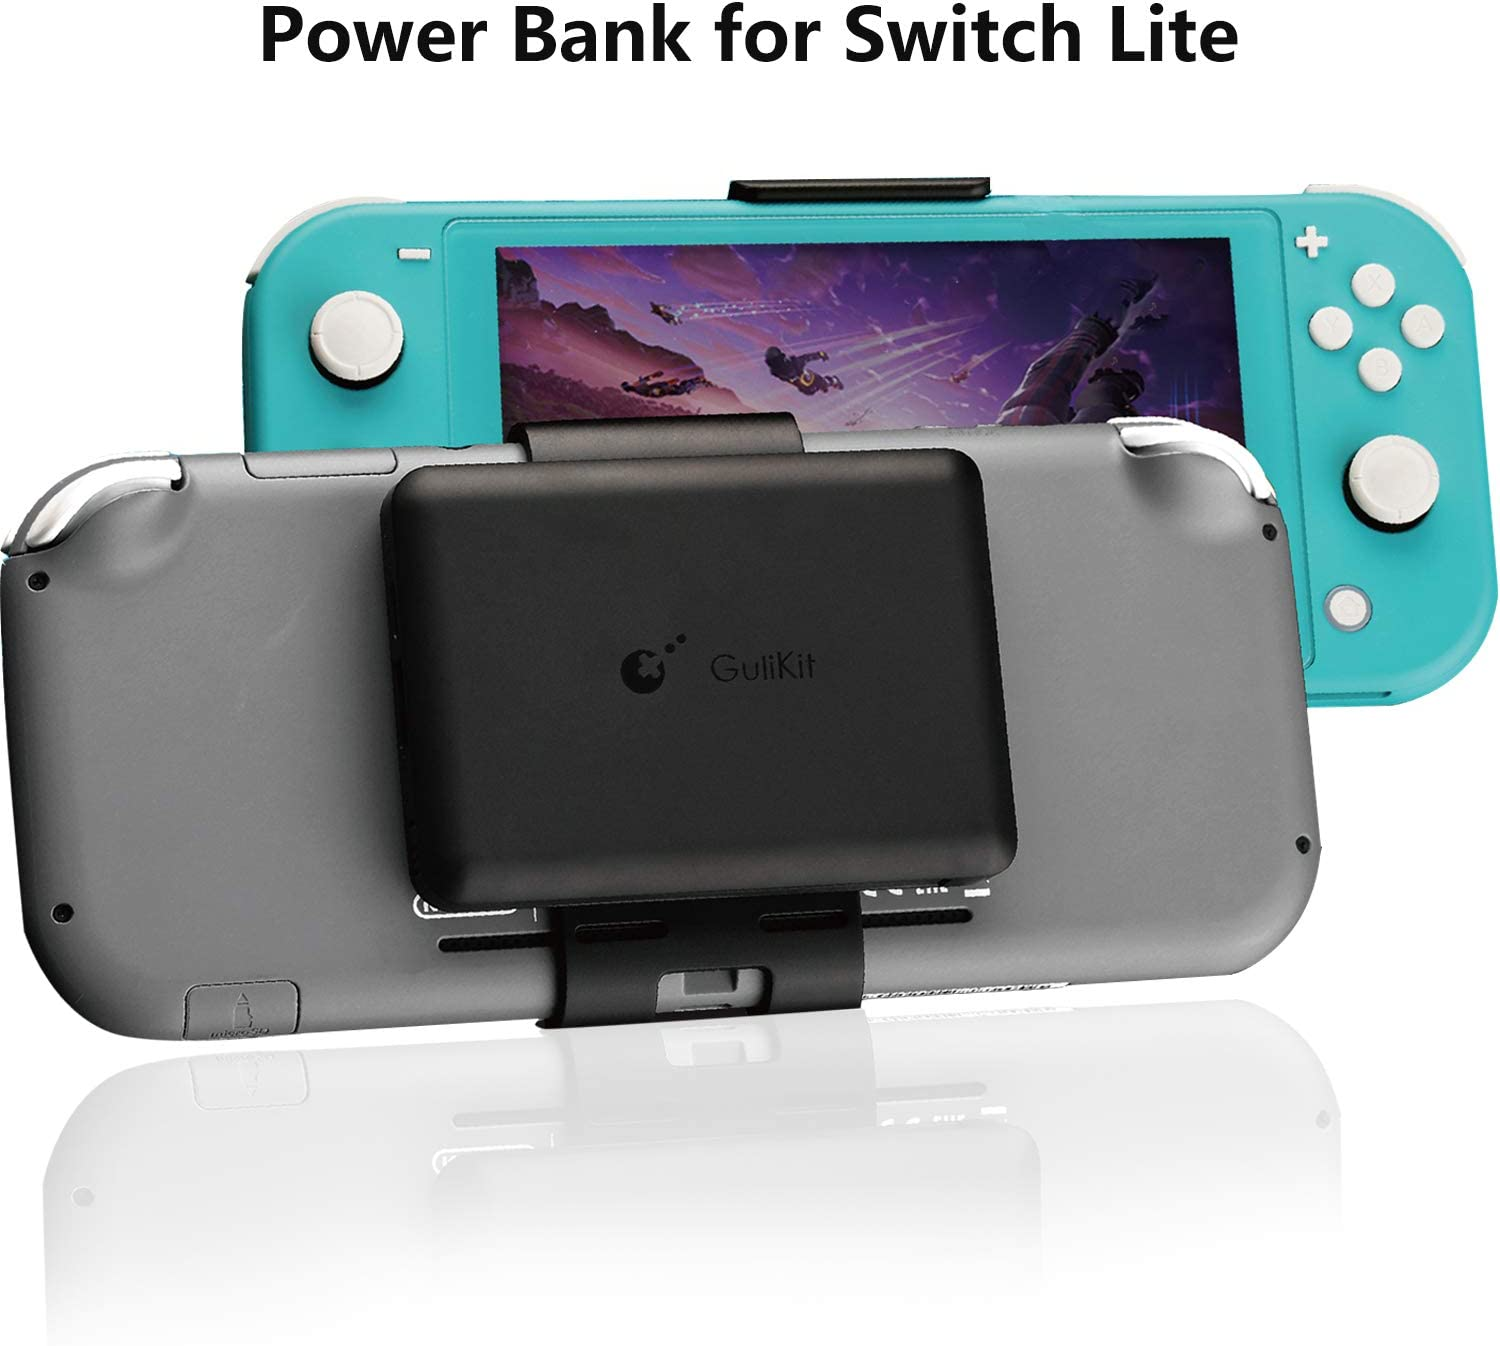 Power Bank for Nintendo Switch Lite,5000mAh Rechargeable Extended Portable Battery Charger, Compact Travel Backup Power Pack for Nintendo Switch Lite by Emperor of Gadgets